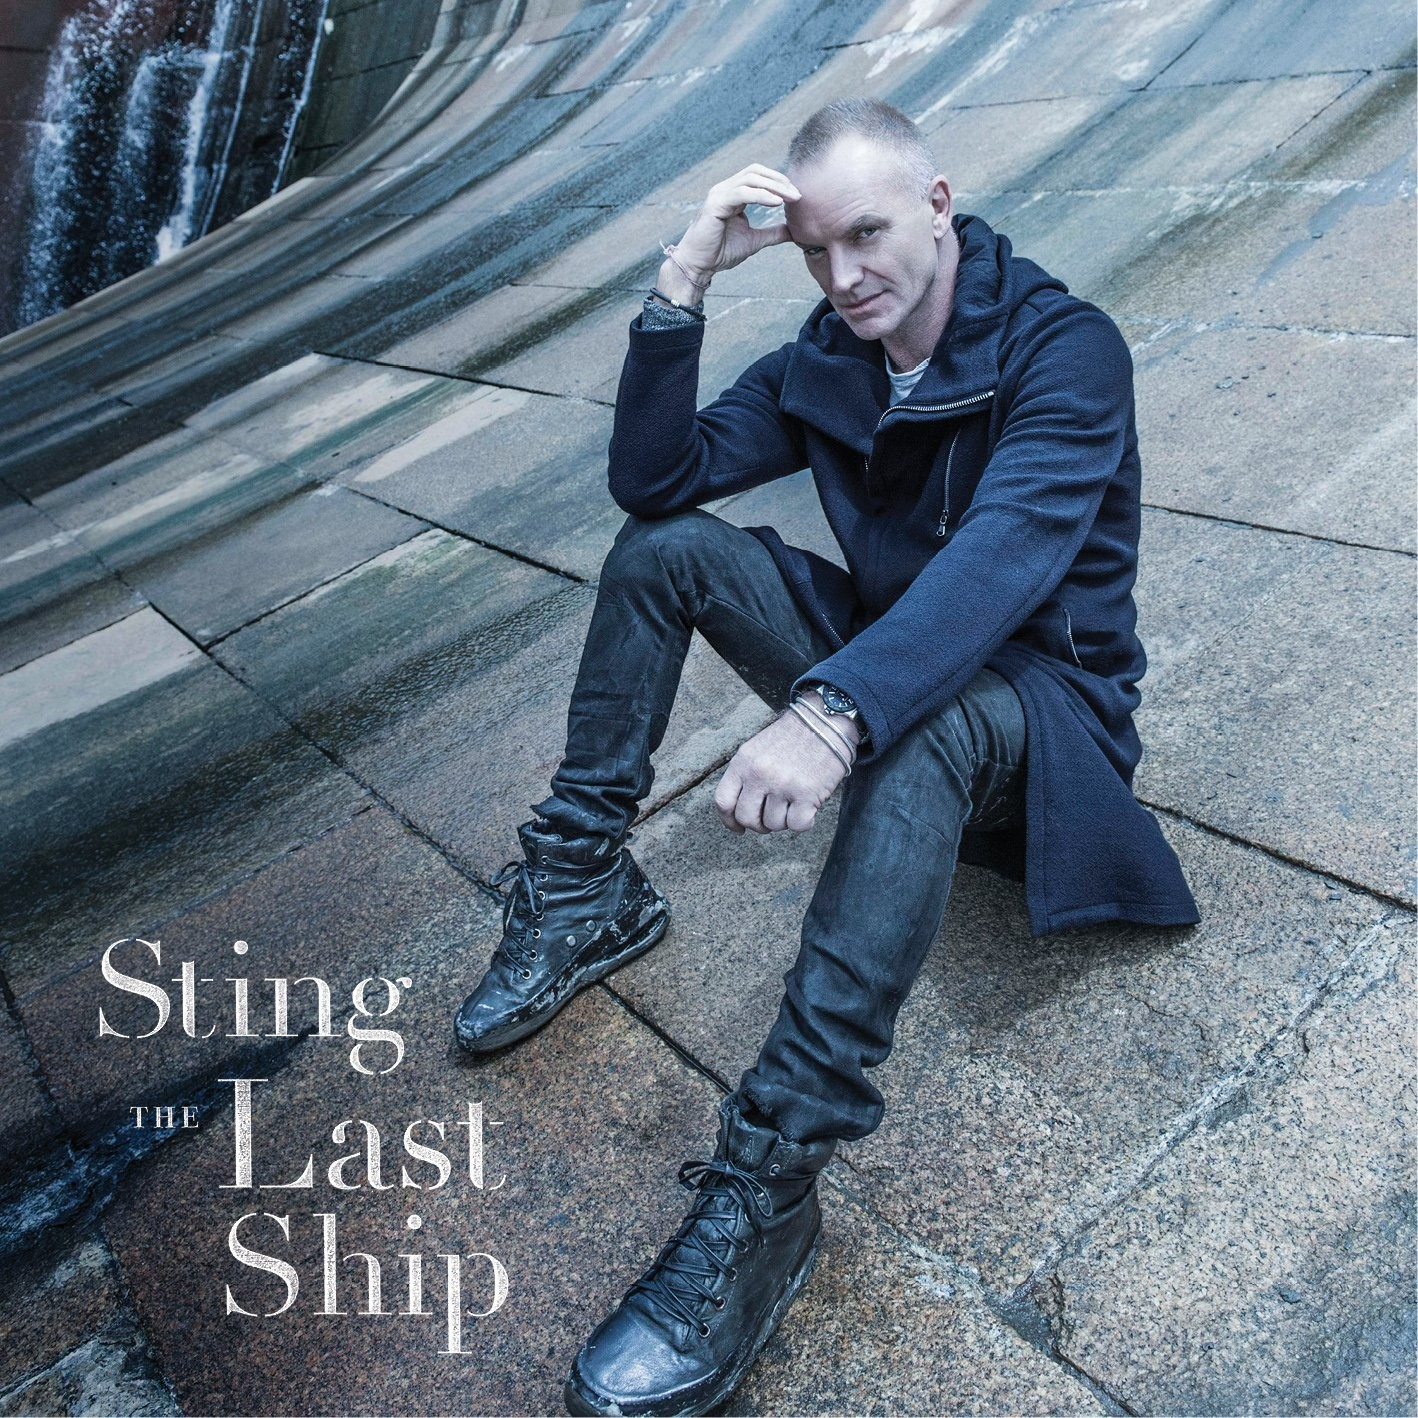 Sting - The Last Ship(2013)_mp3bst.com